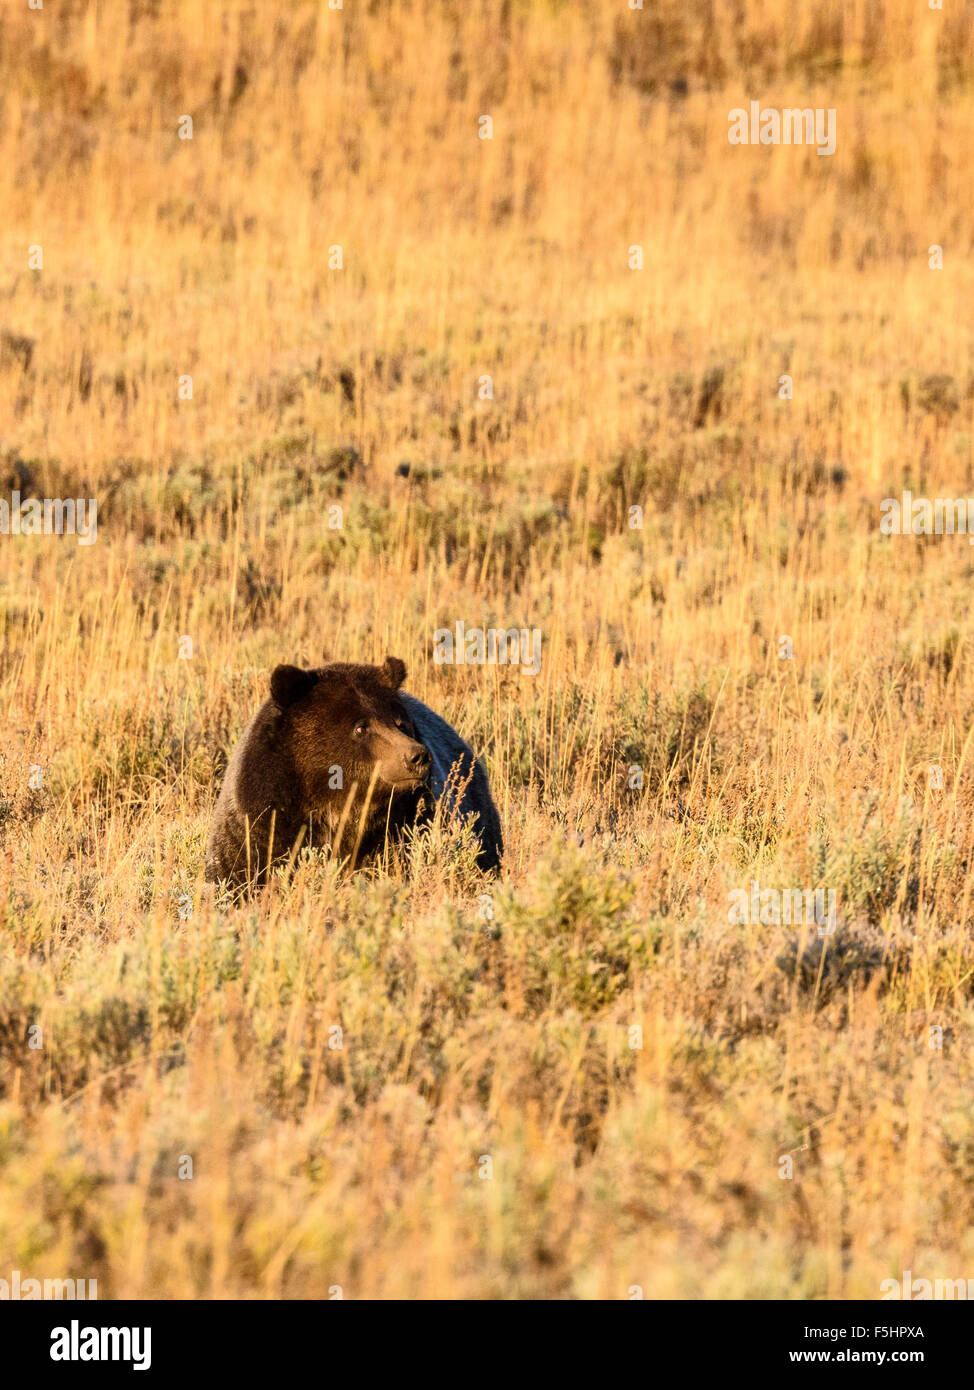 Brown Bear (Grizzly), Ursus arctos, Hayden Valley, Yellowstone National Park, Wyoming, USA - Stock Image